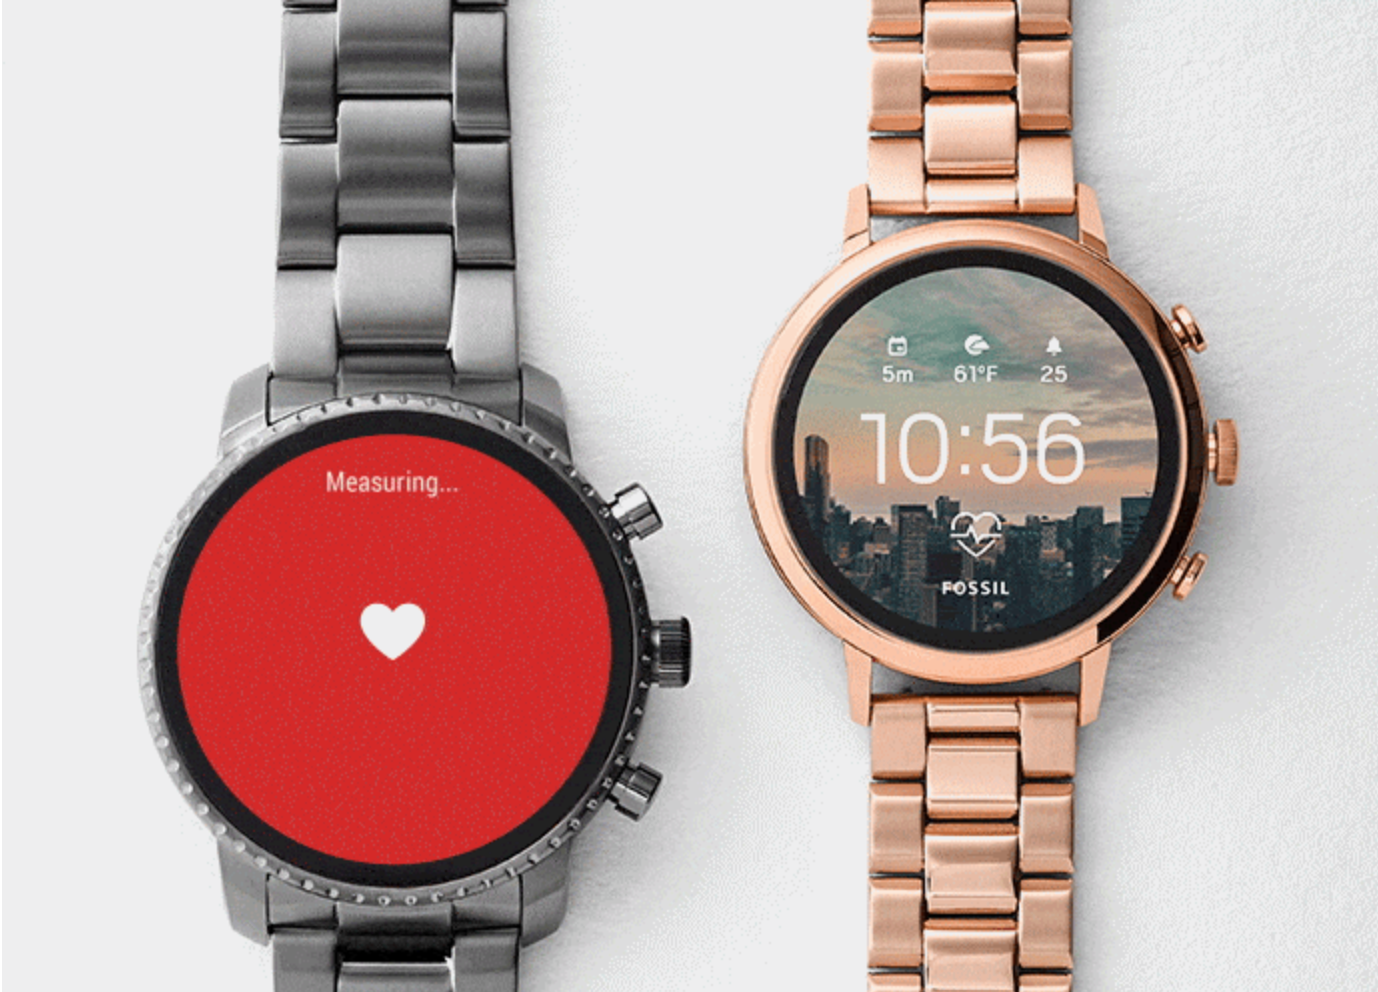 Fossil watch and Pixel